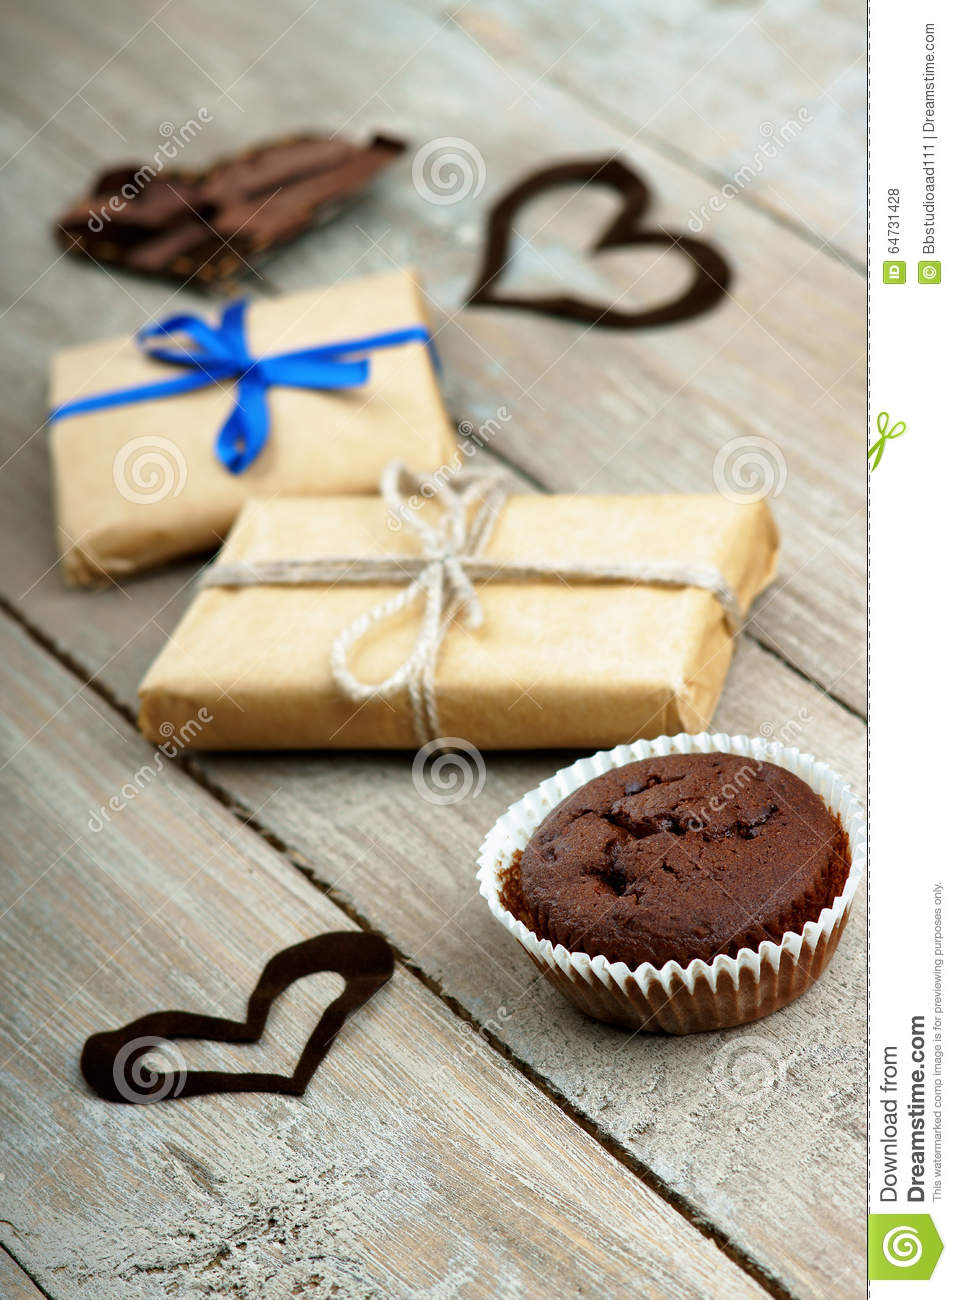 Chocolate muffin, gift boxes and heart shapes